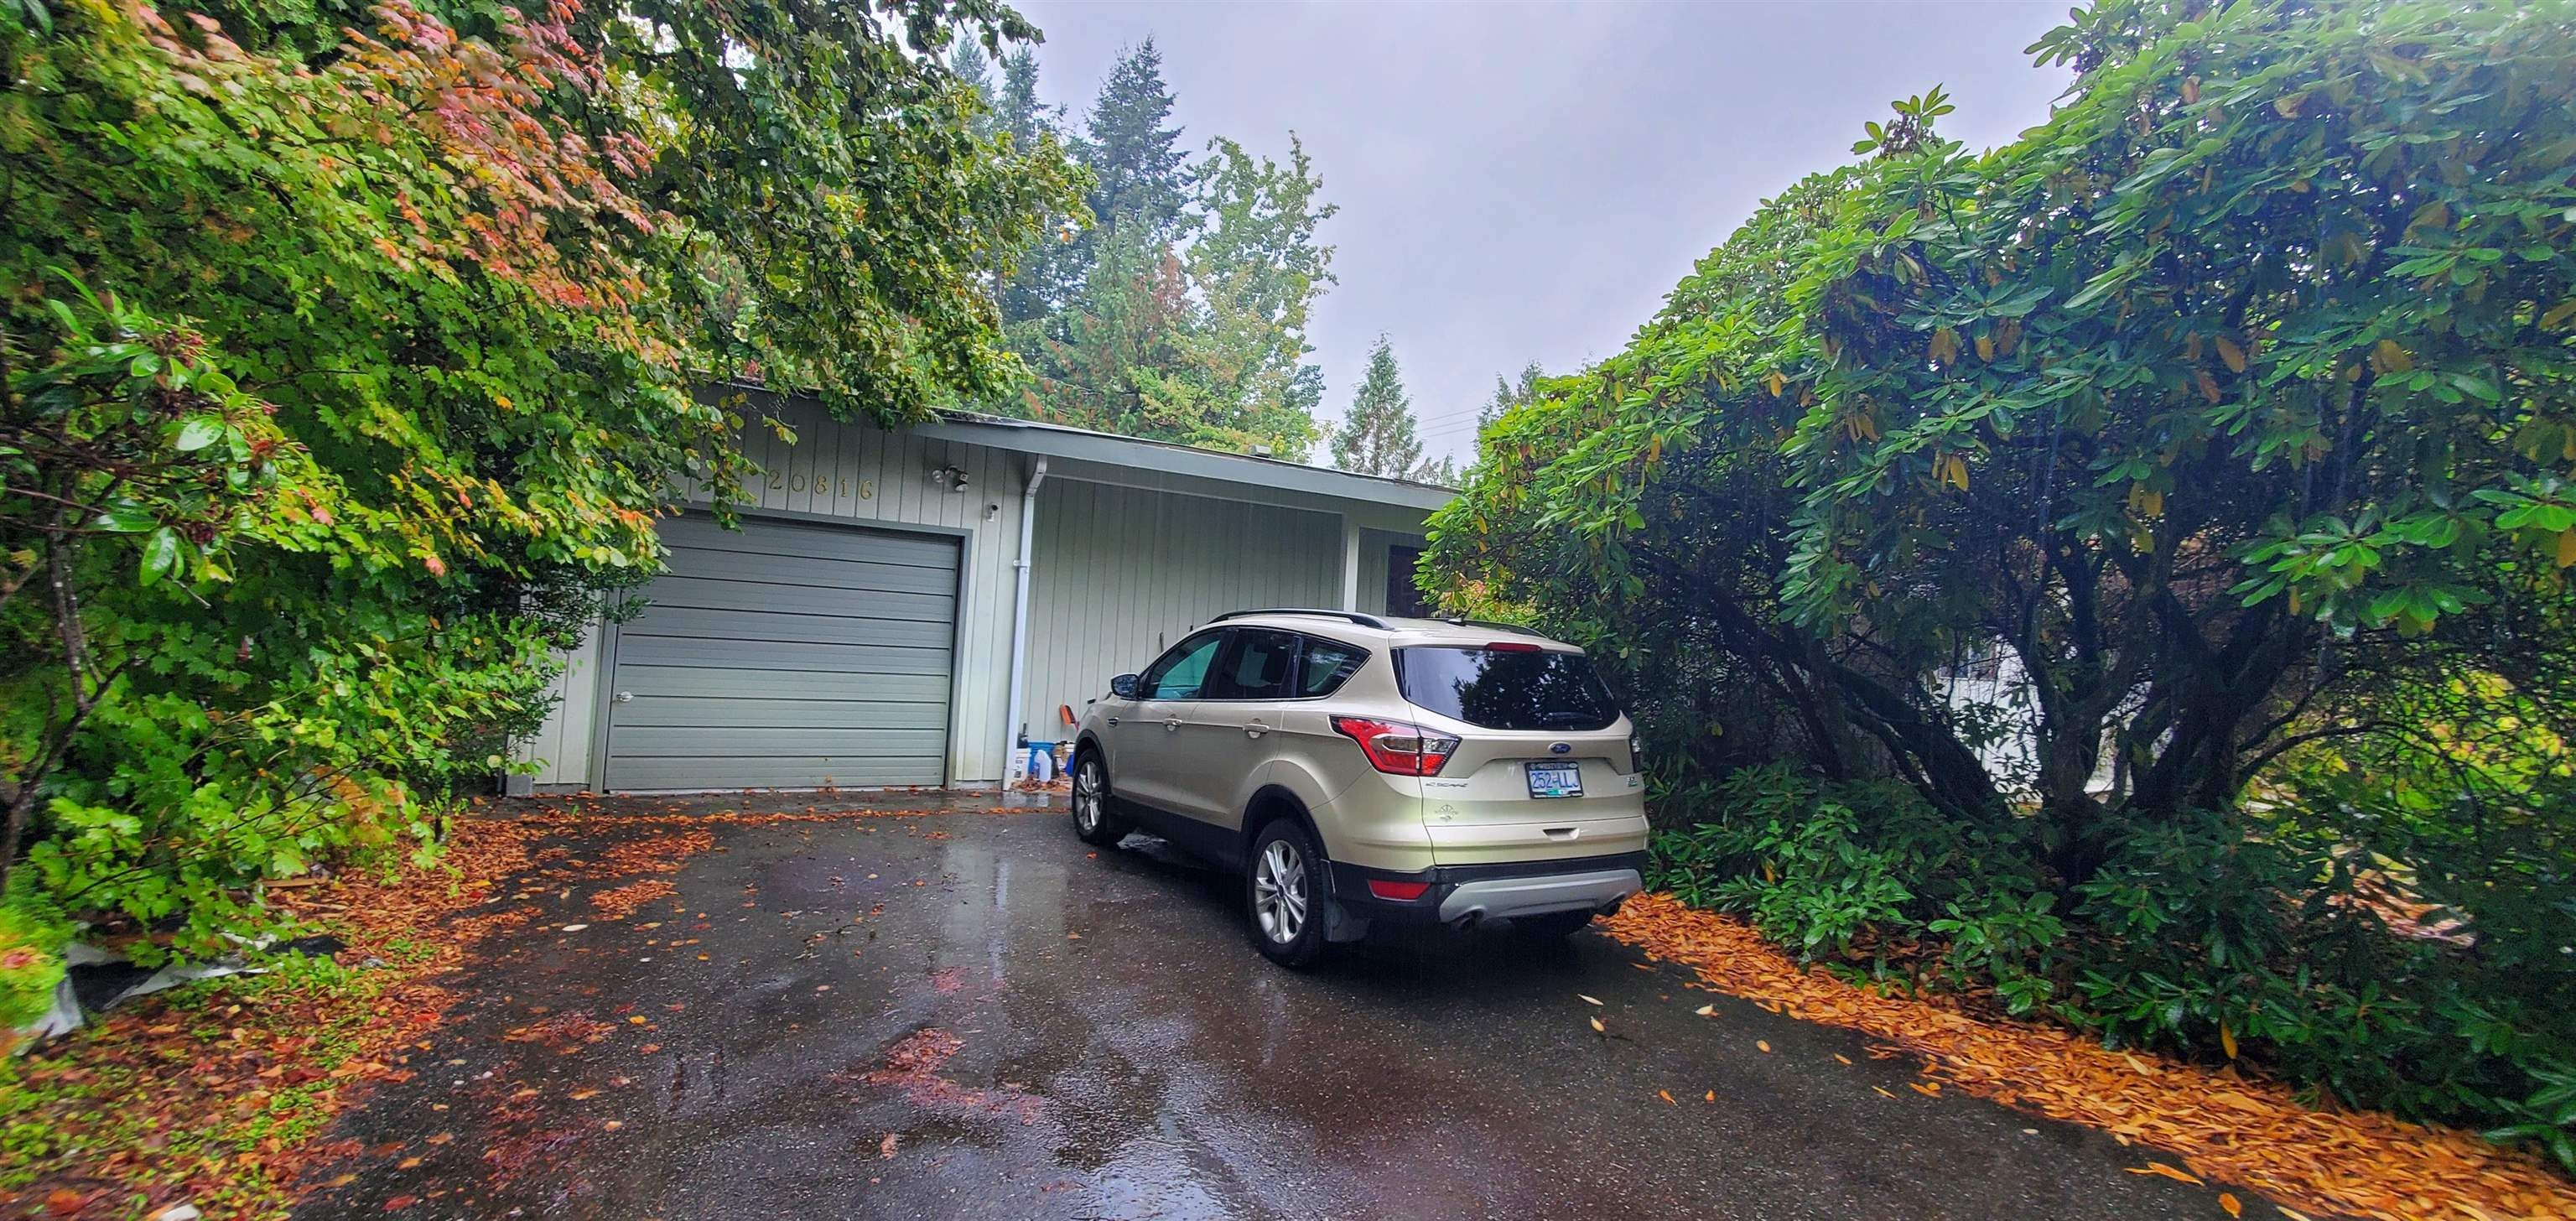 Main Photo: 20816 45A Avenue in Langley: Langley City House for sale : MLS®# R2618365